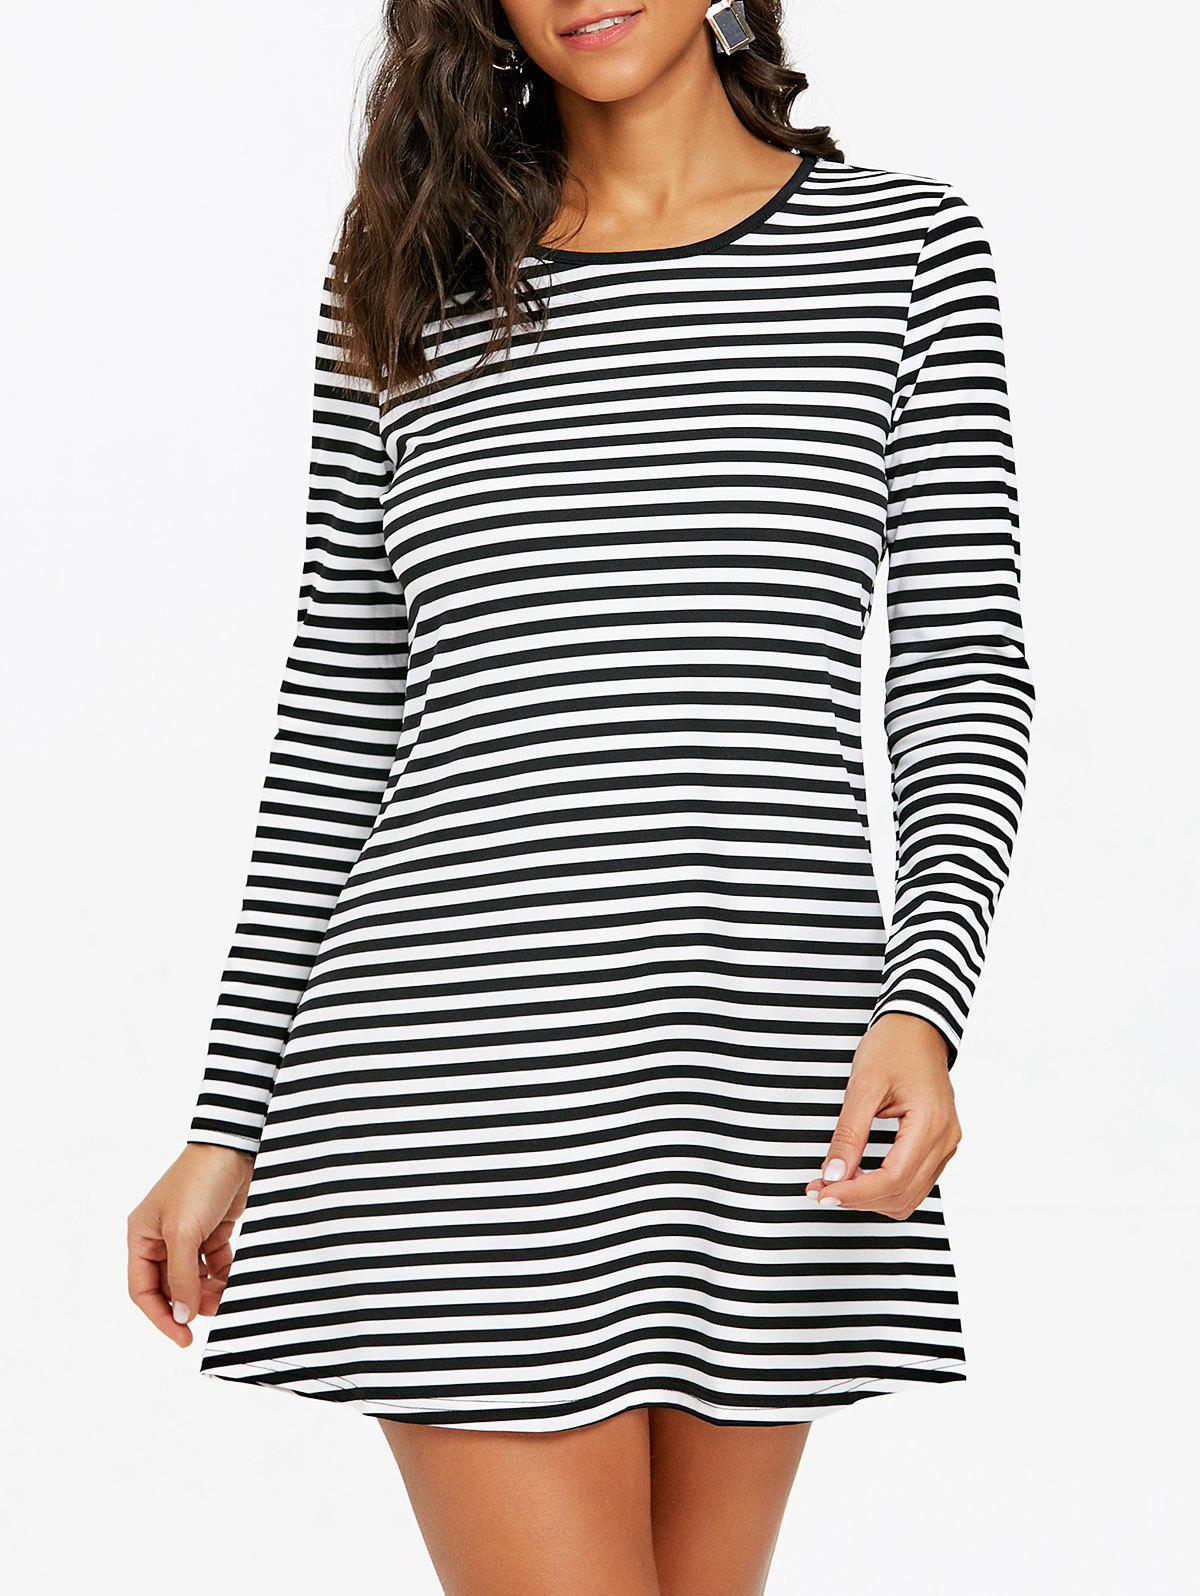 Hot Striped Mini T-shirt Dress